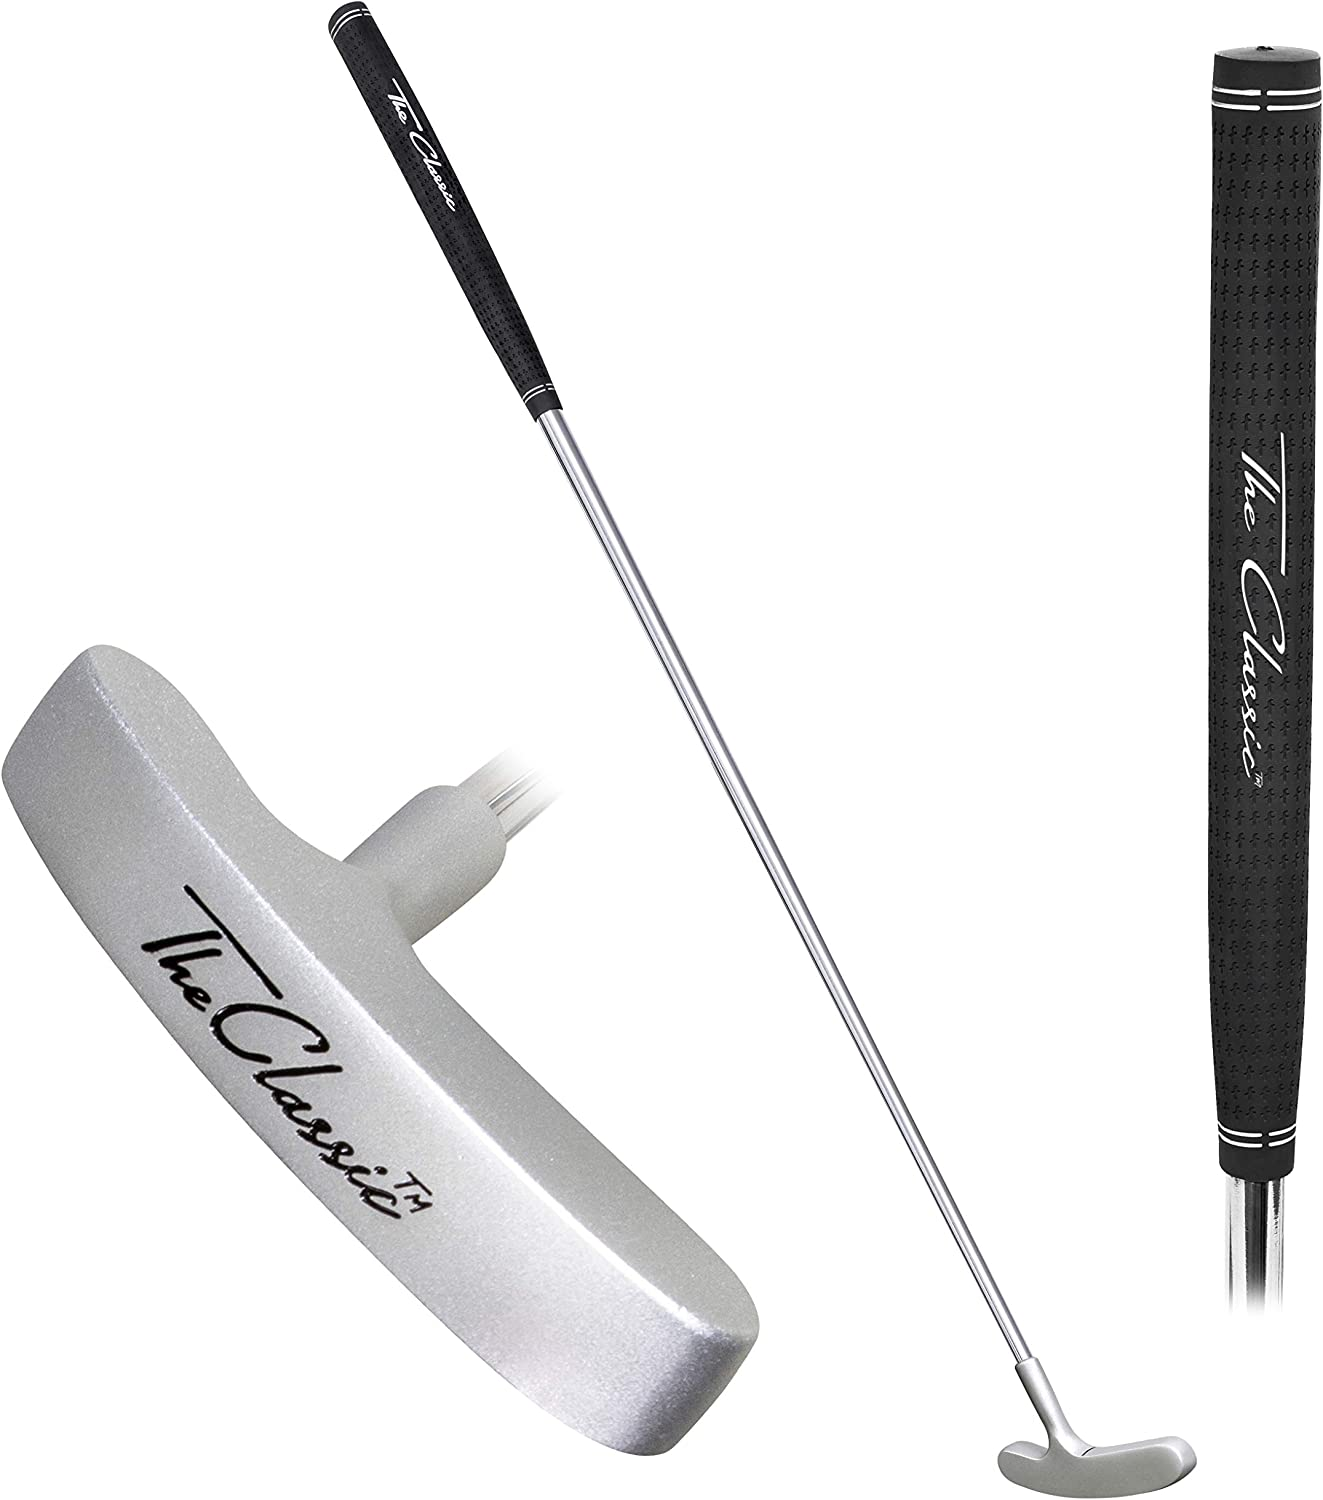 GoSports The Classic Golf Putter – Premium Grip and Putt Putt Style Two-Way Head for Right or Left Handed Golfers – 35″ Length